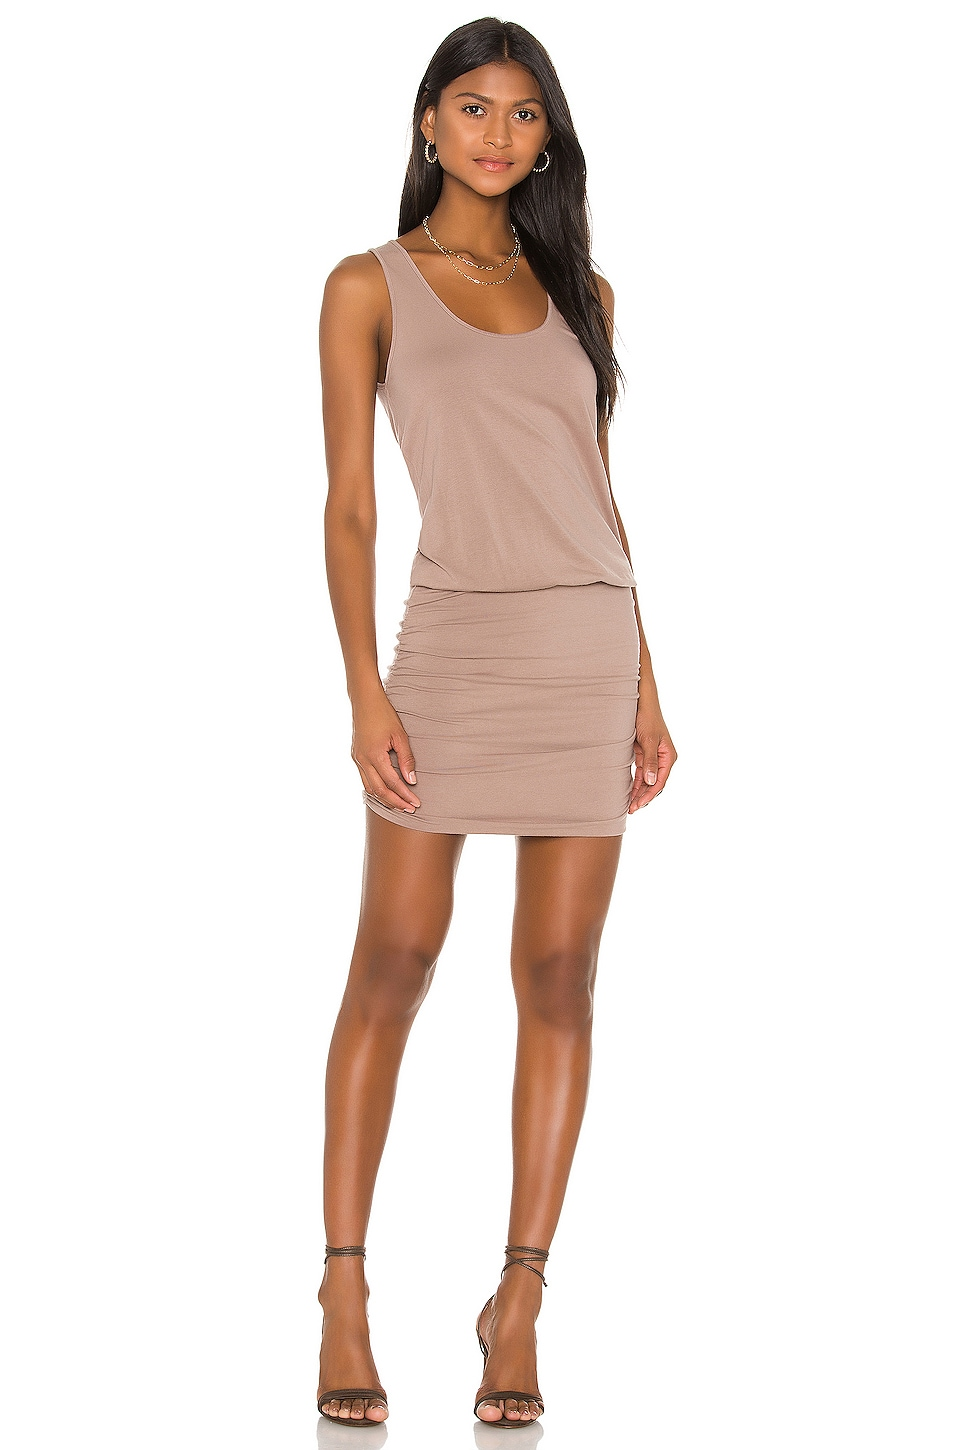 Draped Modal Jersey Mini Dress             Bobi                                                                                                       CA$ 87.76 7